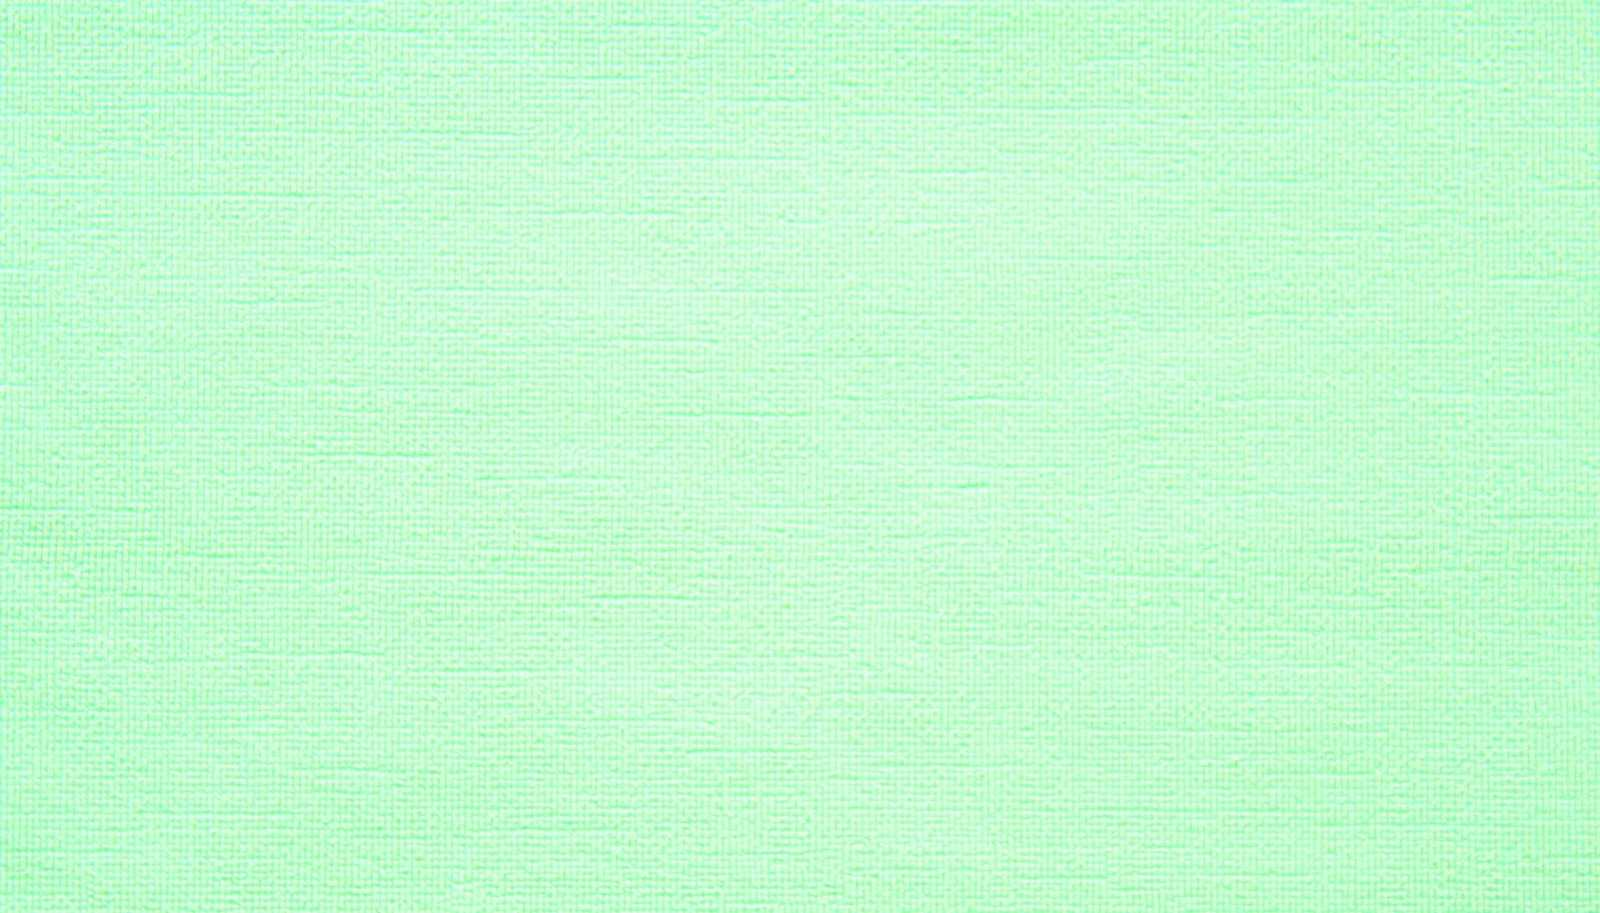 Pastel Mint Green Wallpapers Top Free Pastel Mint Green Backgrounds Wallpaperaccess